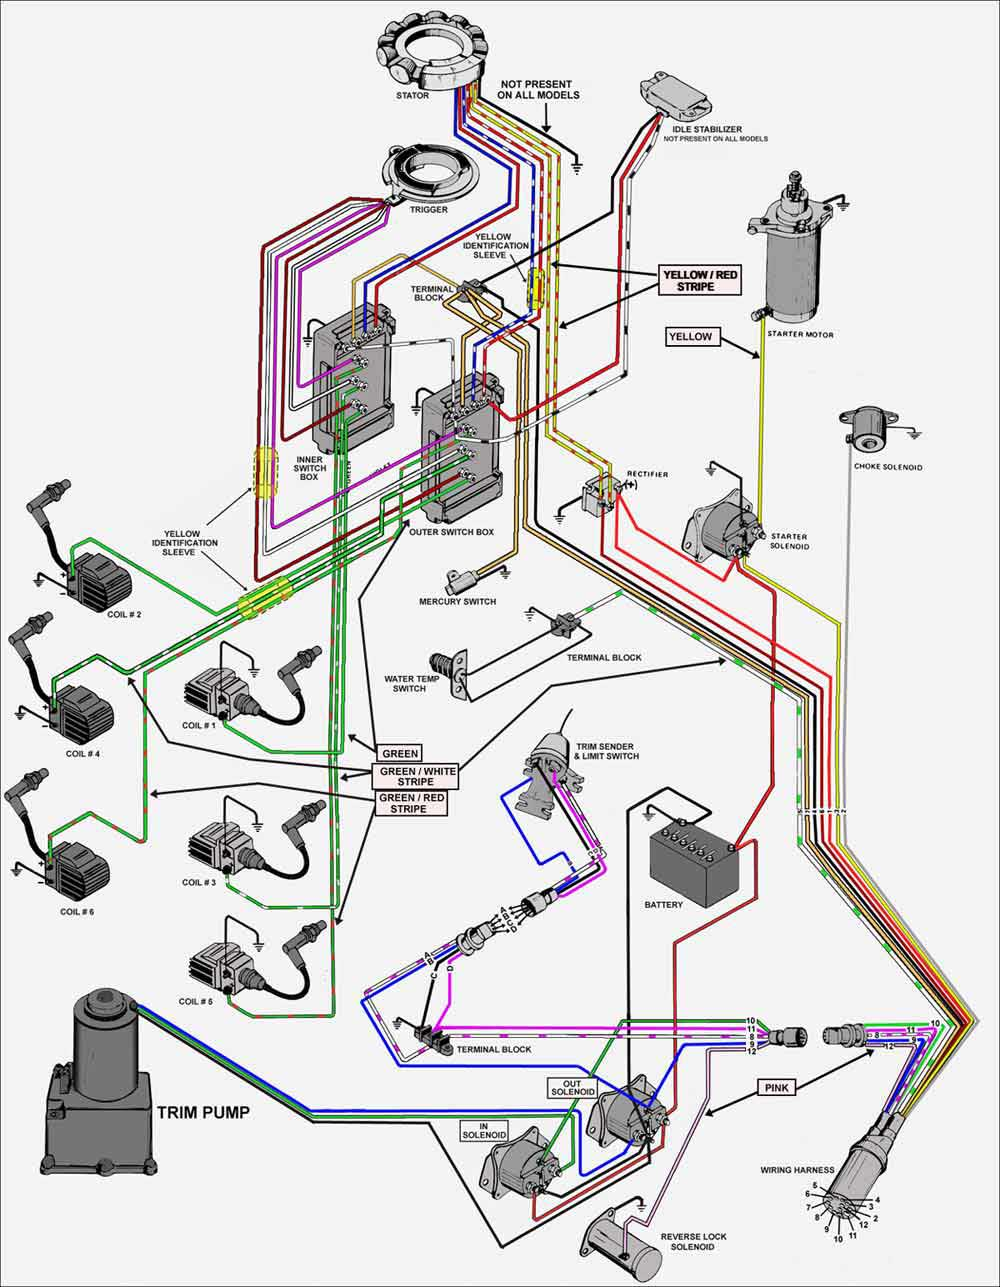 mercury outboard wiring diagrams -- mastertech marin mercury xr4 wiring diagram mercury switch box schematic mastertech marine